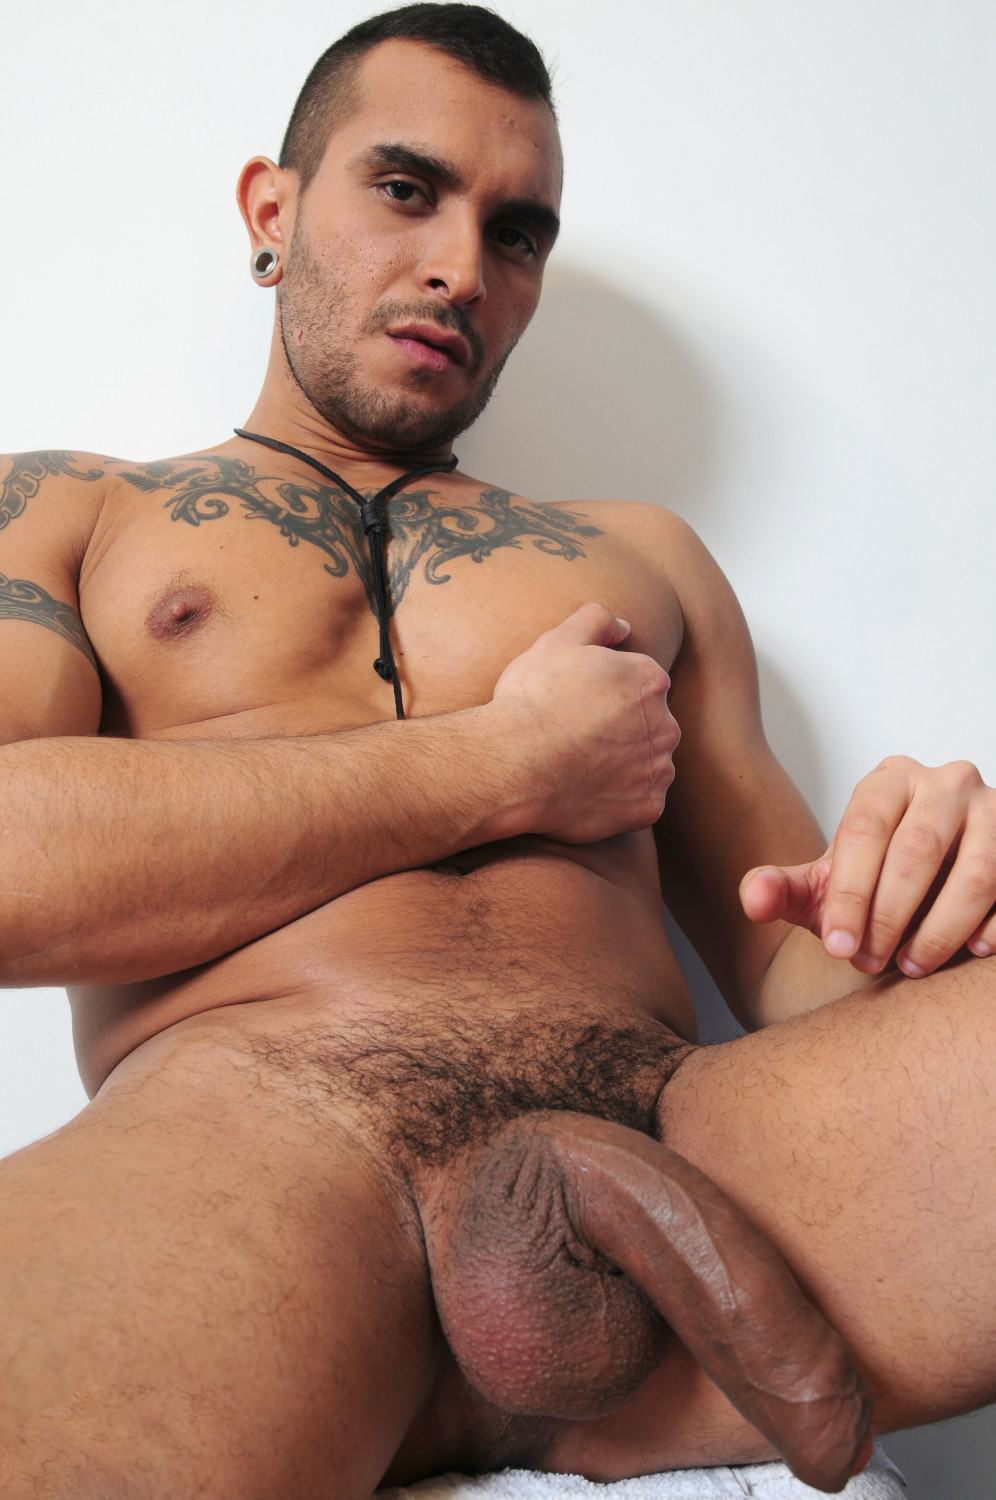 Gay uncircumcised cock